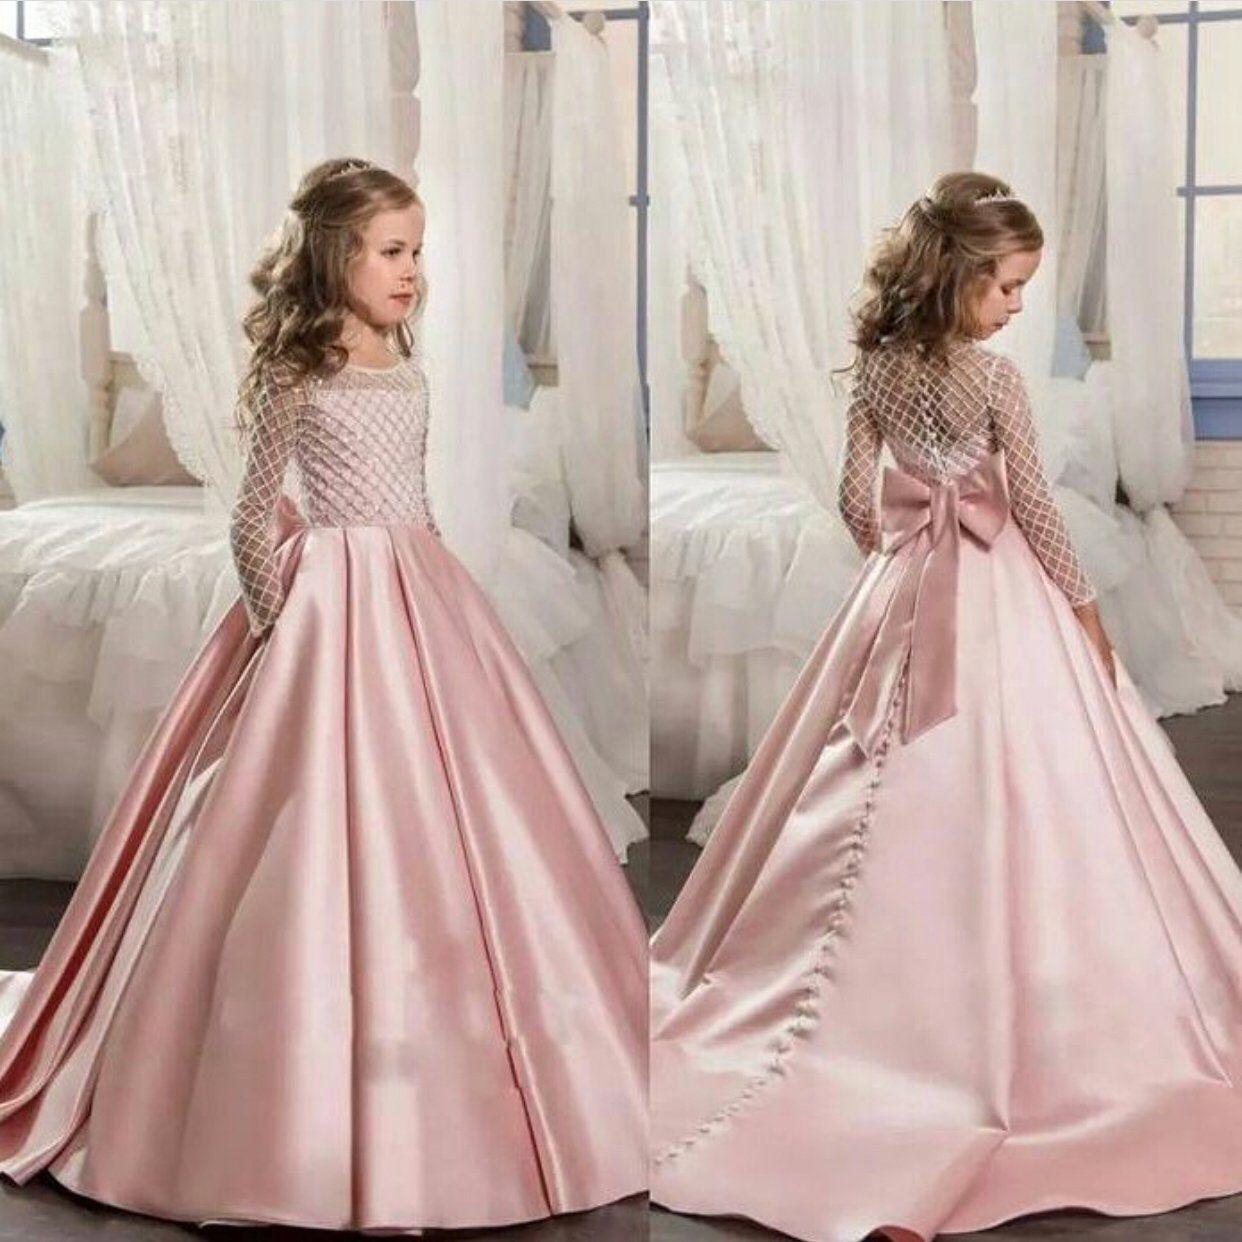 pink satin flower girl dresses for weddings long sleeve cute